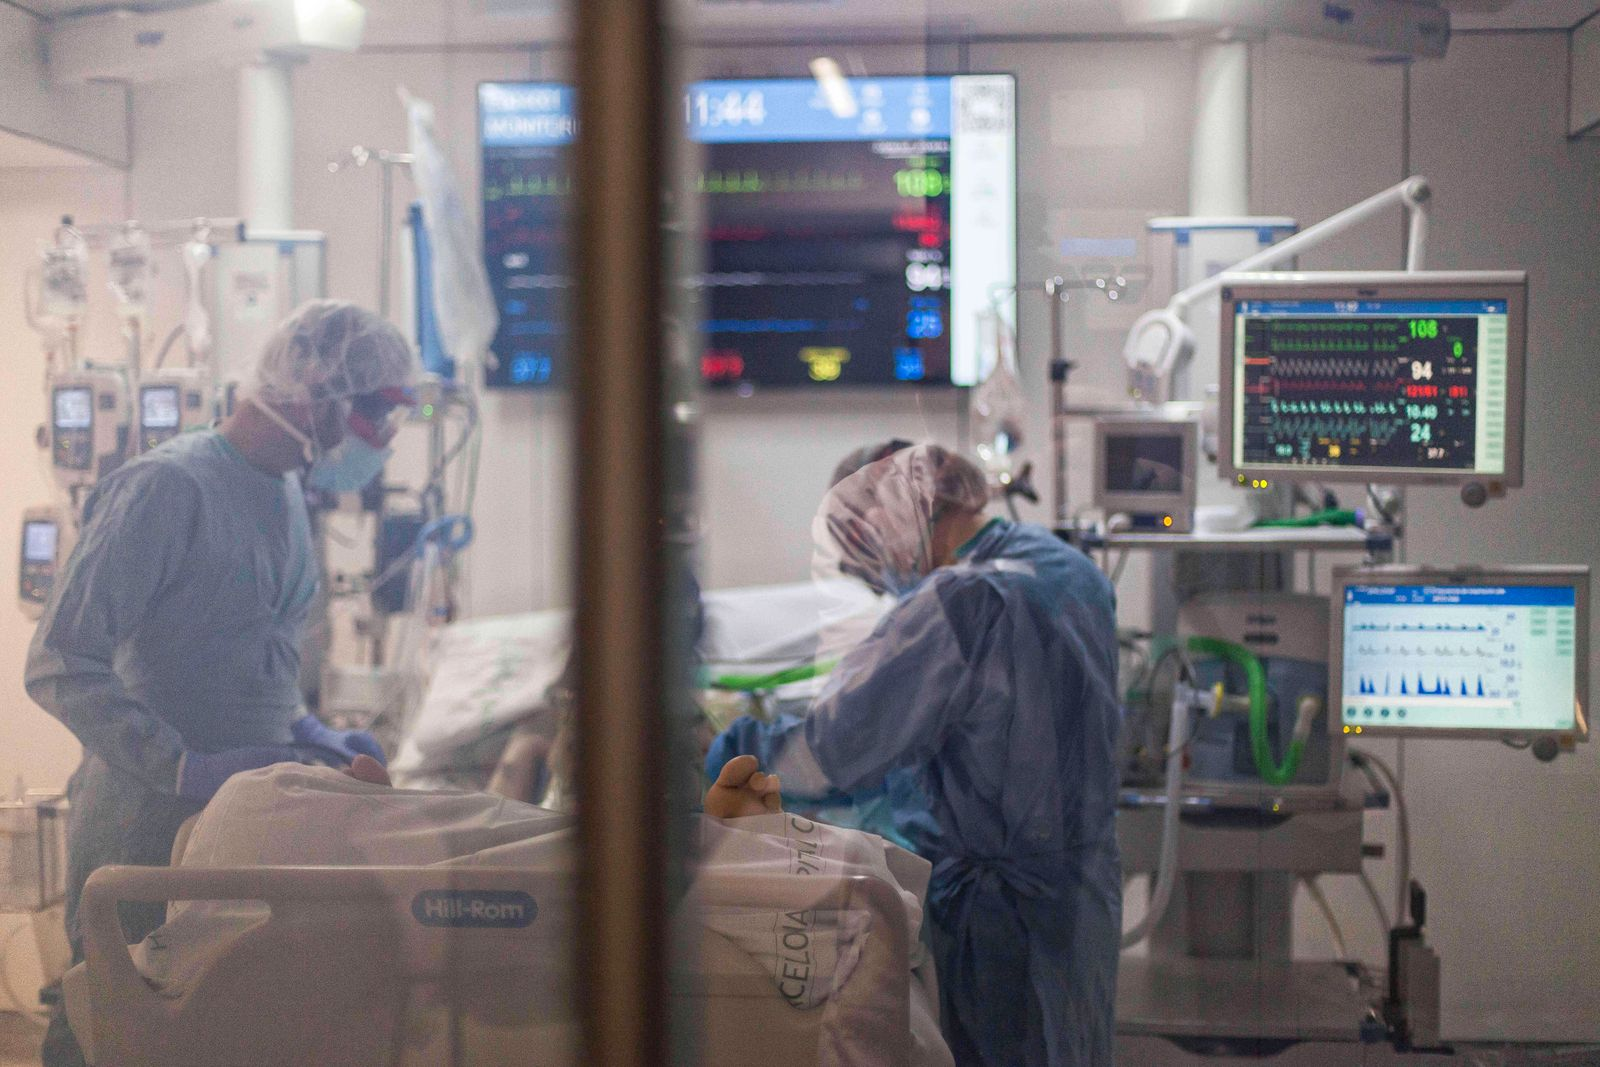 April 29, 2020, Barcelona, Spain: Health workers wearing protective gear as a precaution assist a COVID19 patient in the